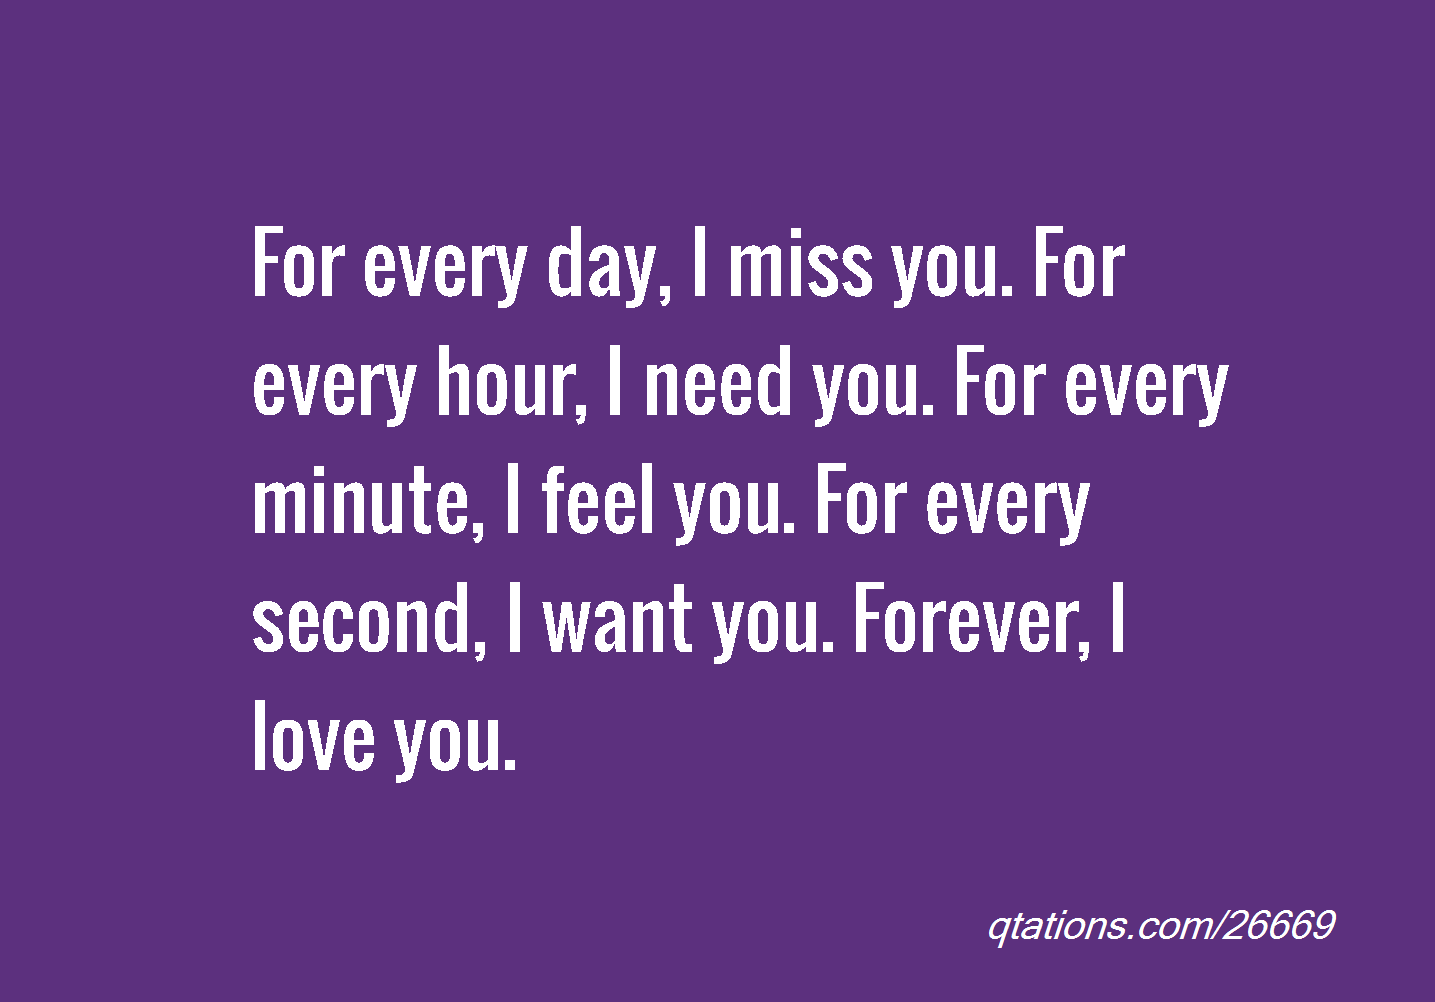 Wanting To Be With Someone Quotes Quotesgram: Want You Forever Quotes. QuotesGram